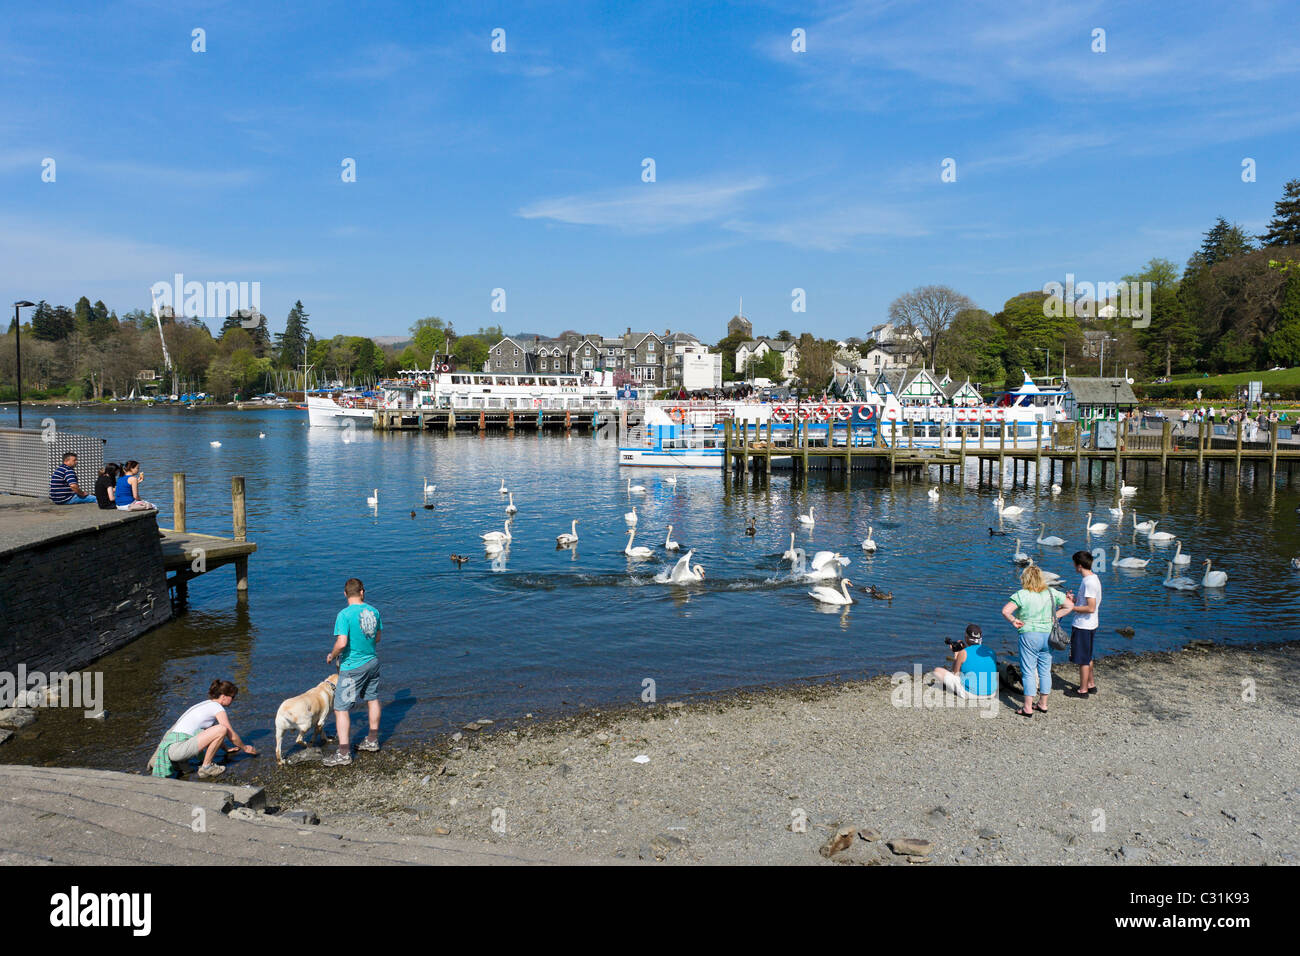 Tourists feeding the swans in Bowness, Lake Windermere, Lake District National Park, Cumbria, UK - Stock Image